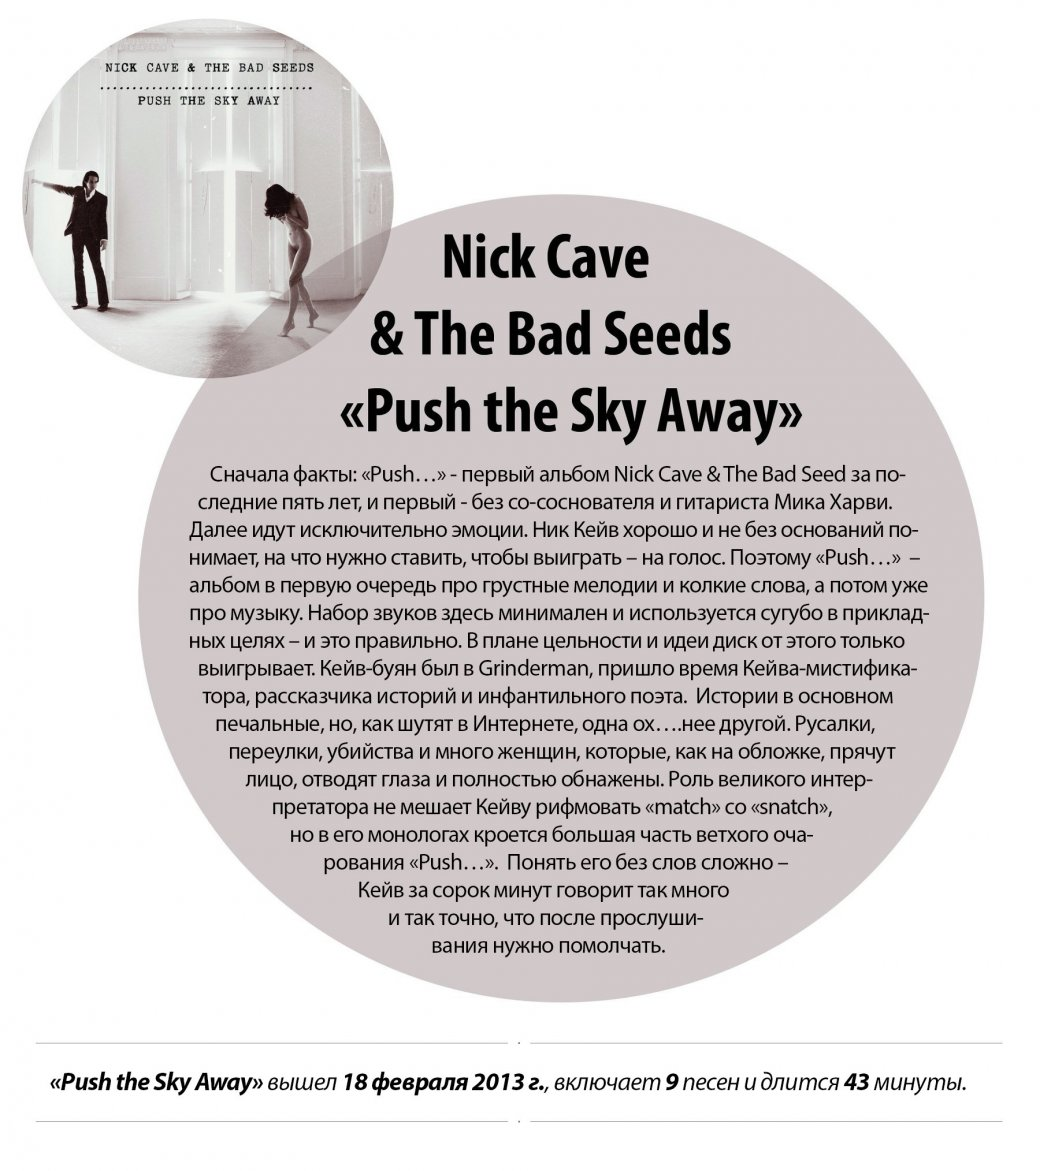 "Альбом недели: Nick Cave & The Bad Seeds ""Push the Sky Away"" - Изображение 2"